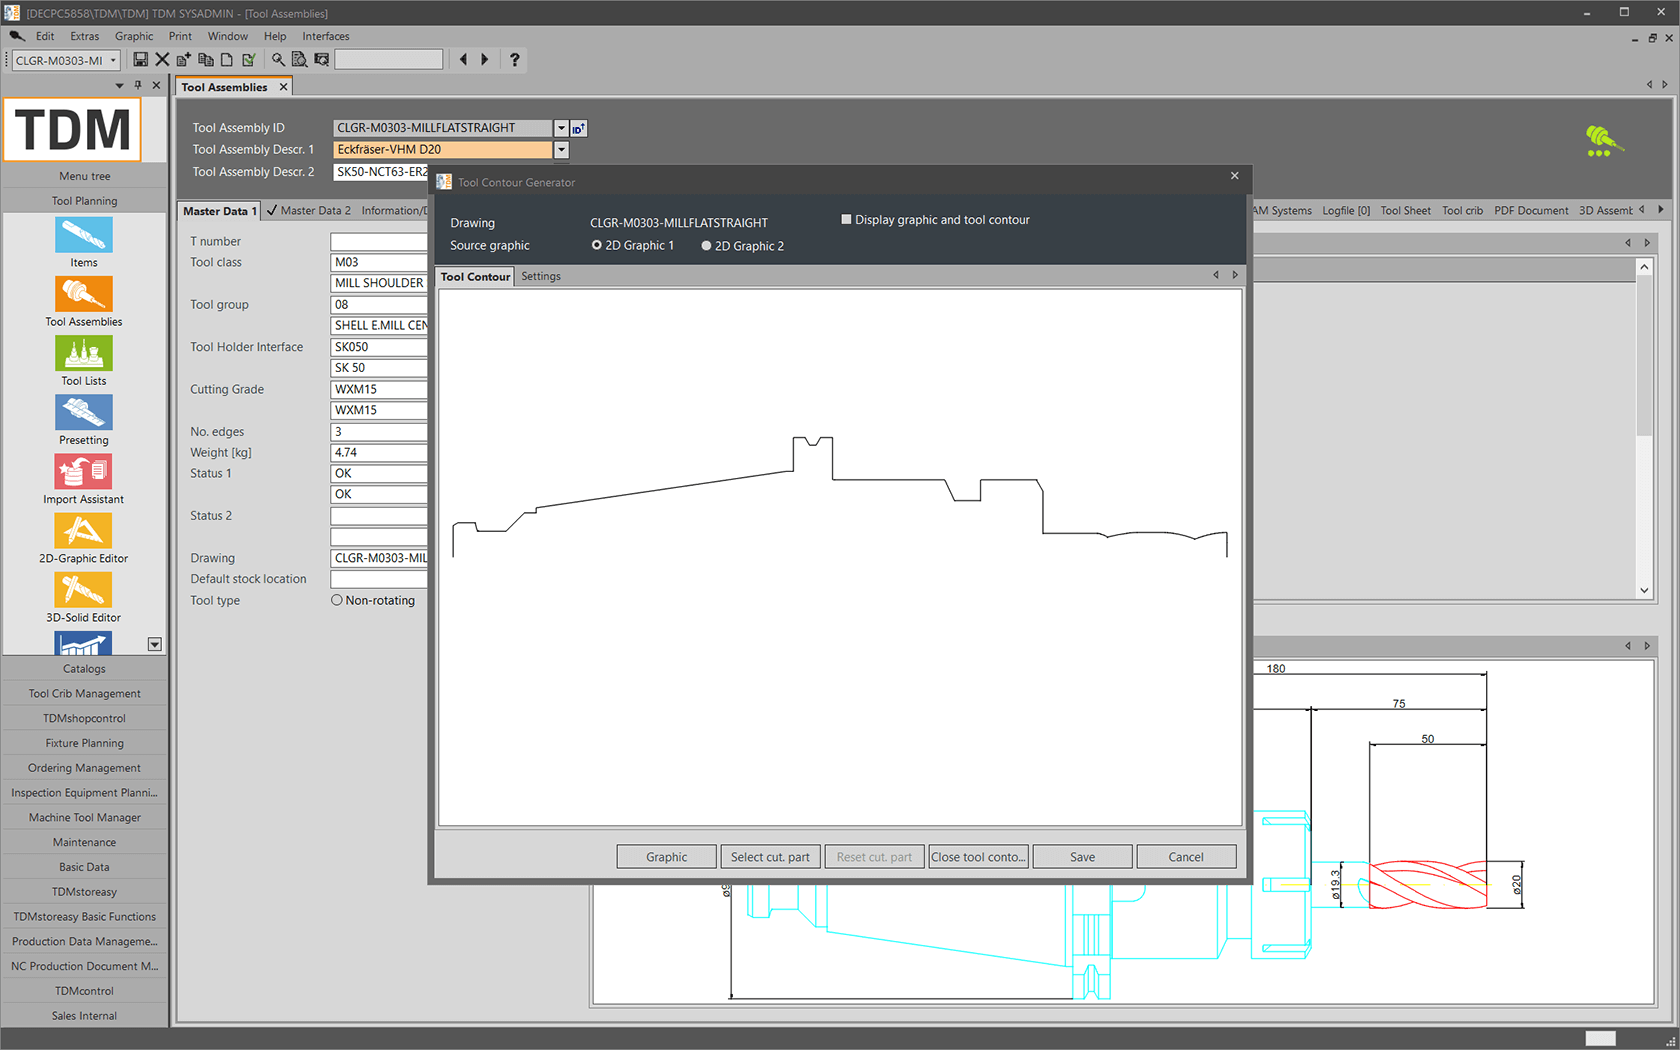 Create rotating tool graphics with the TDM Tool Contour Generator - 2D tool contour. (screen view)